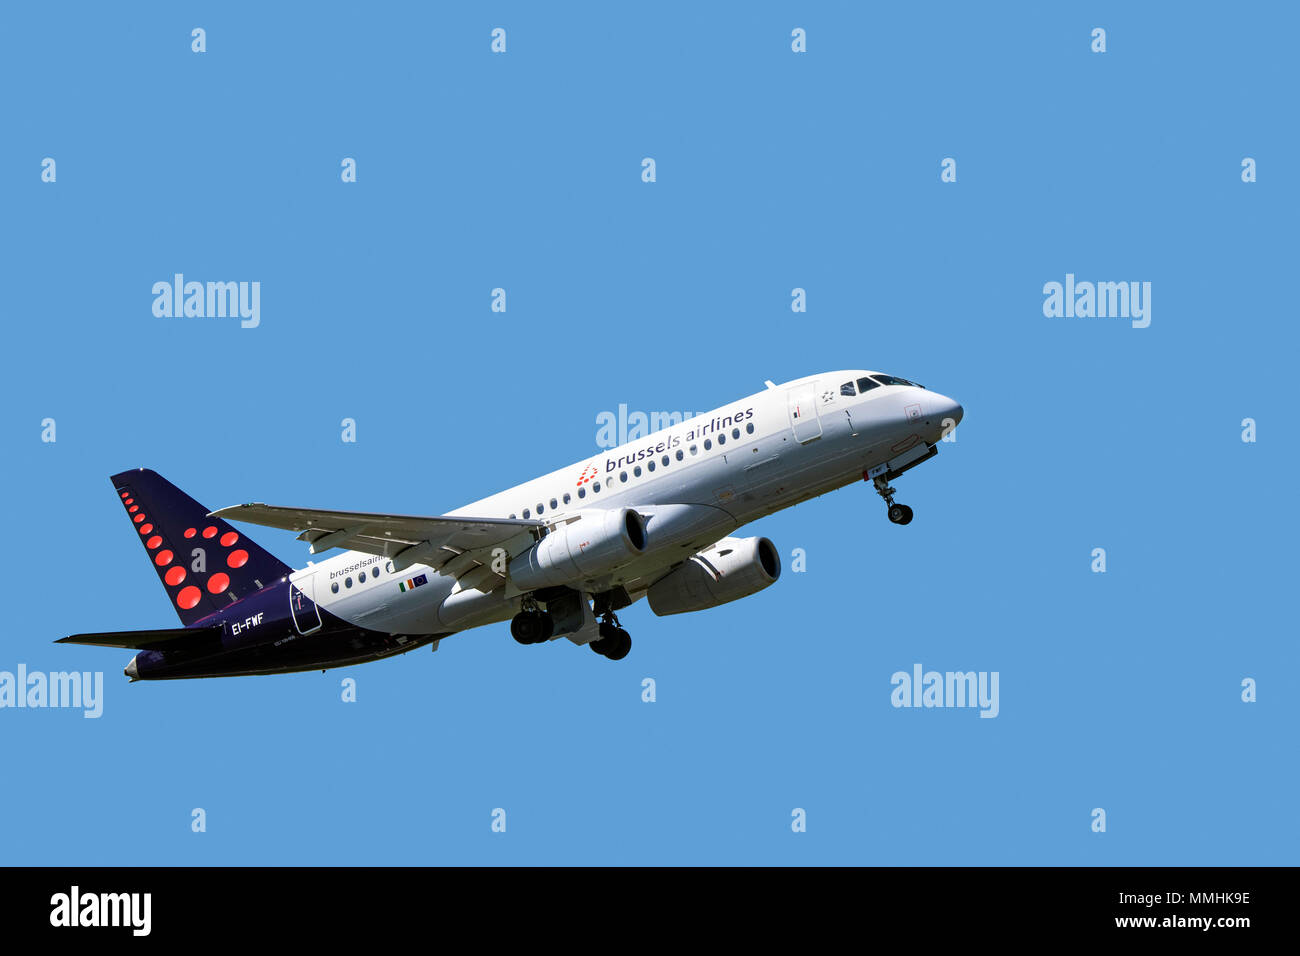 Sukhoi Superjet 100-95B, fly-by-wire twin-engine regional jet from Belgian Brussels Airlines in flight against blue sky - Stock Image